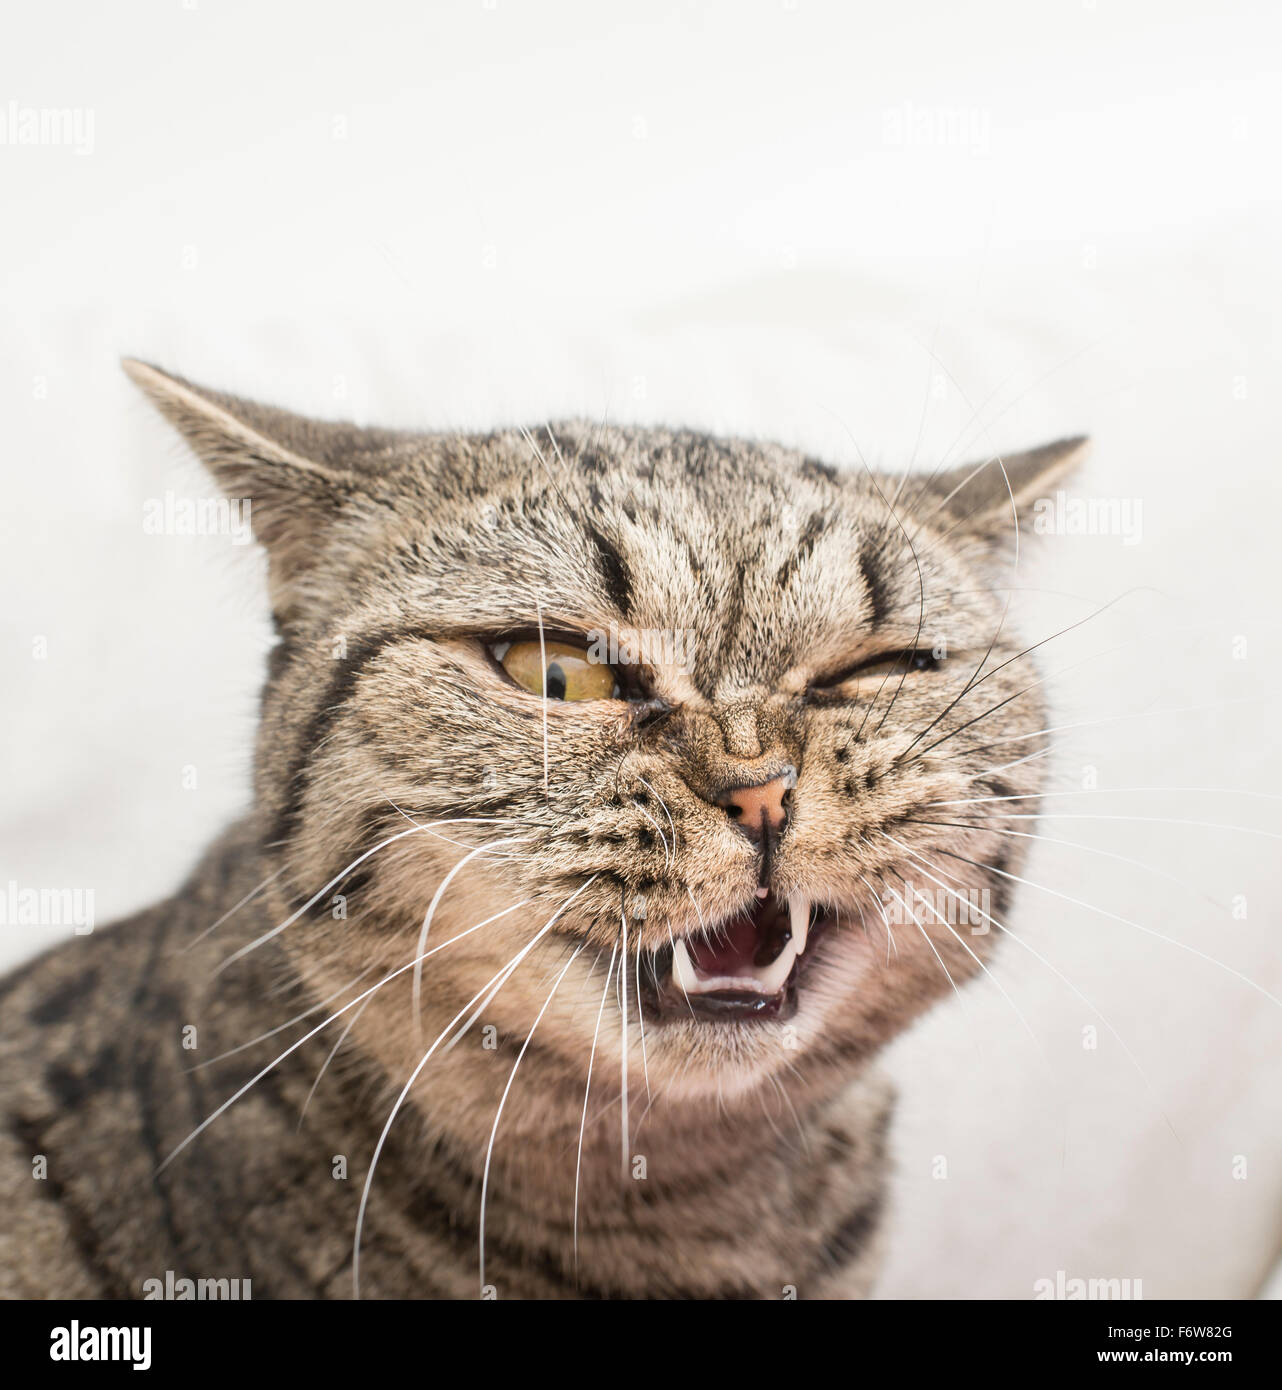 Cat with funny and crazy expression. Face of shock and disgust. - Stock Image